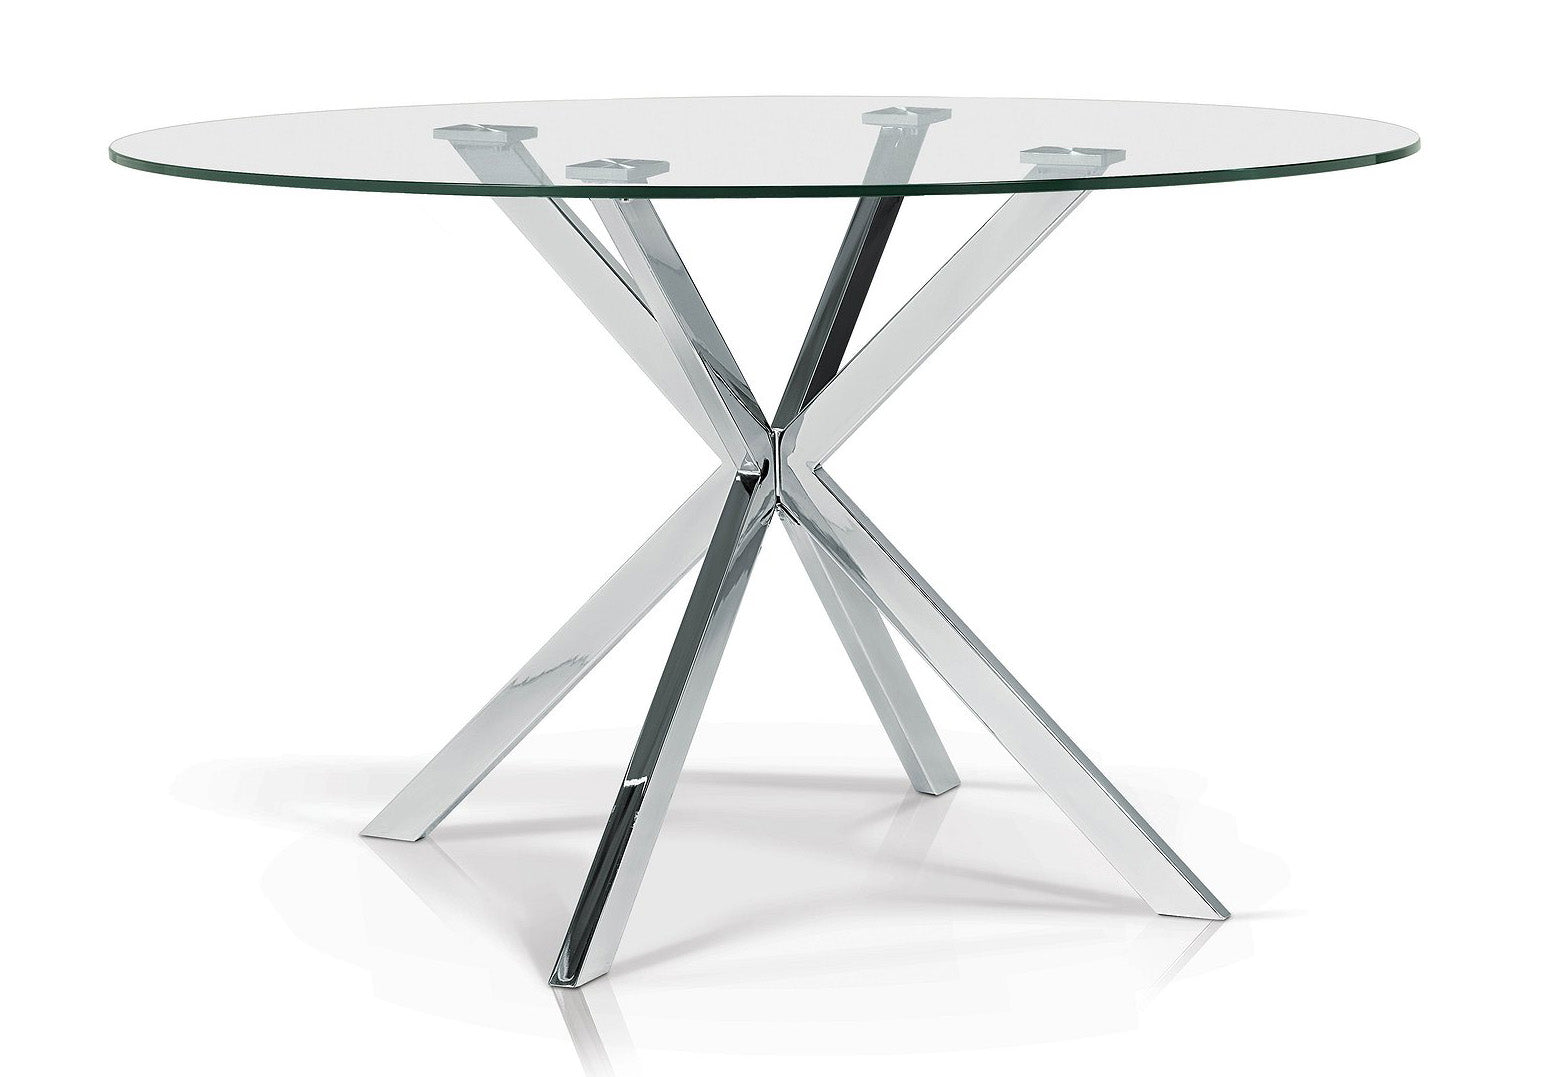 Darron Round Glass Dining Table - MJM Furniture